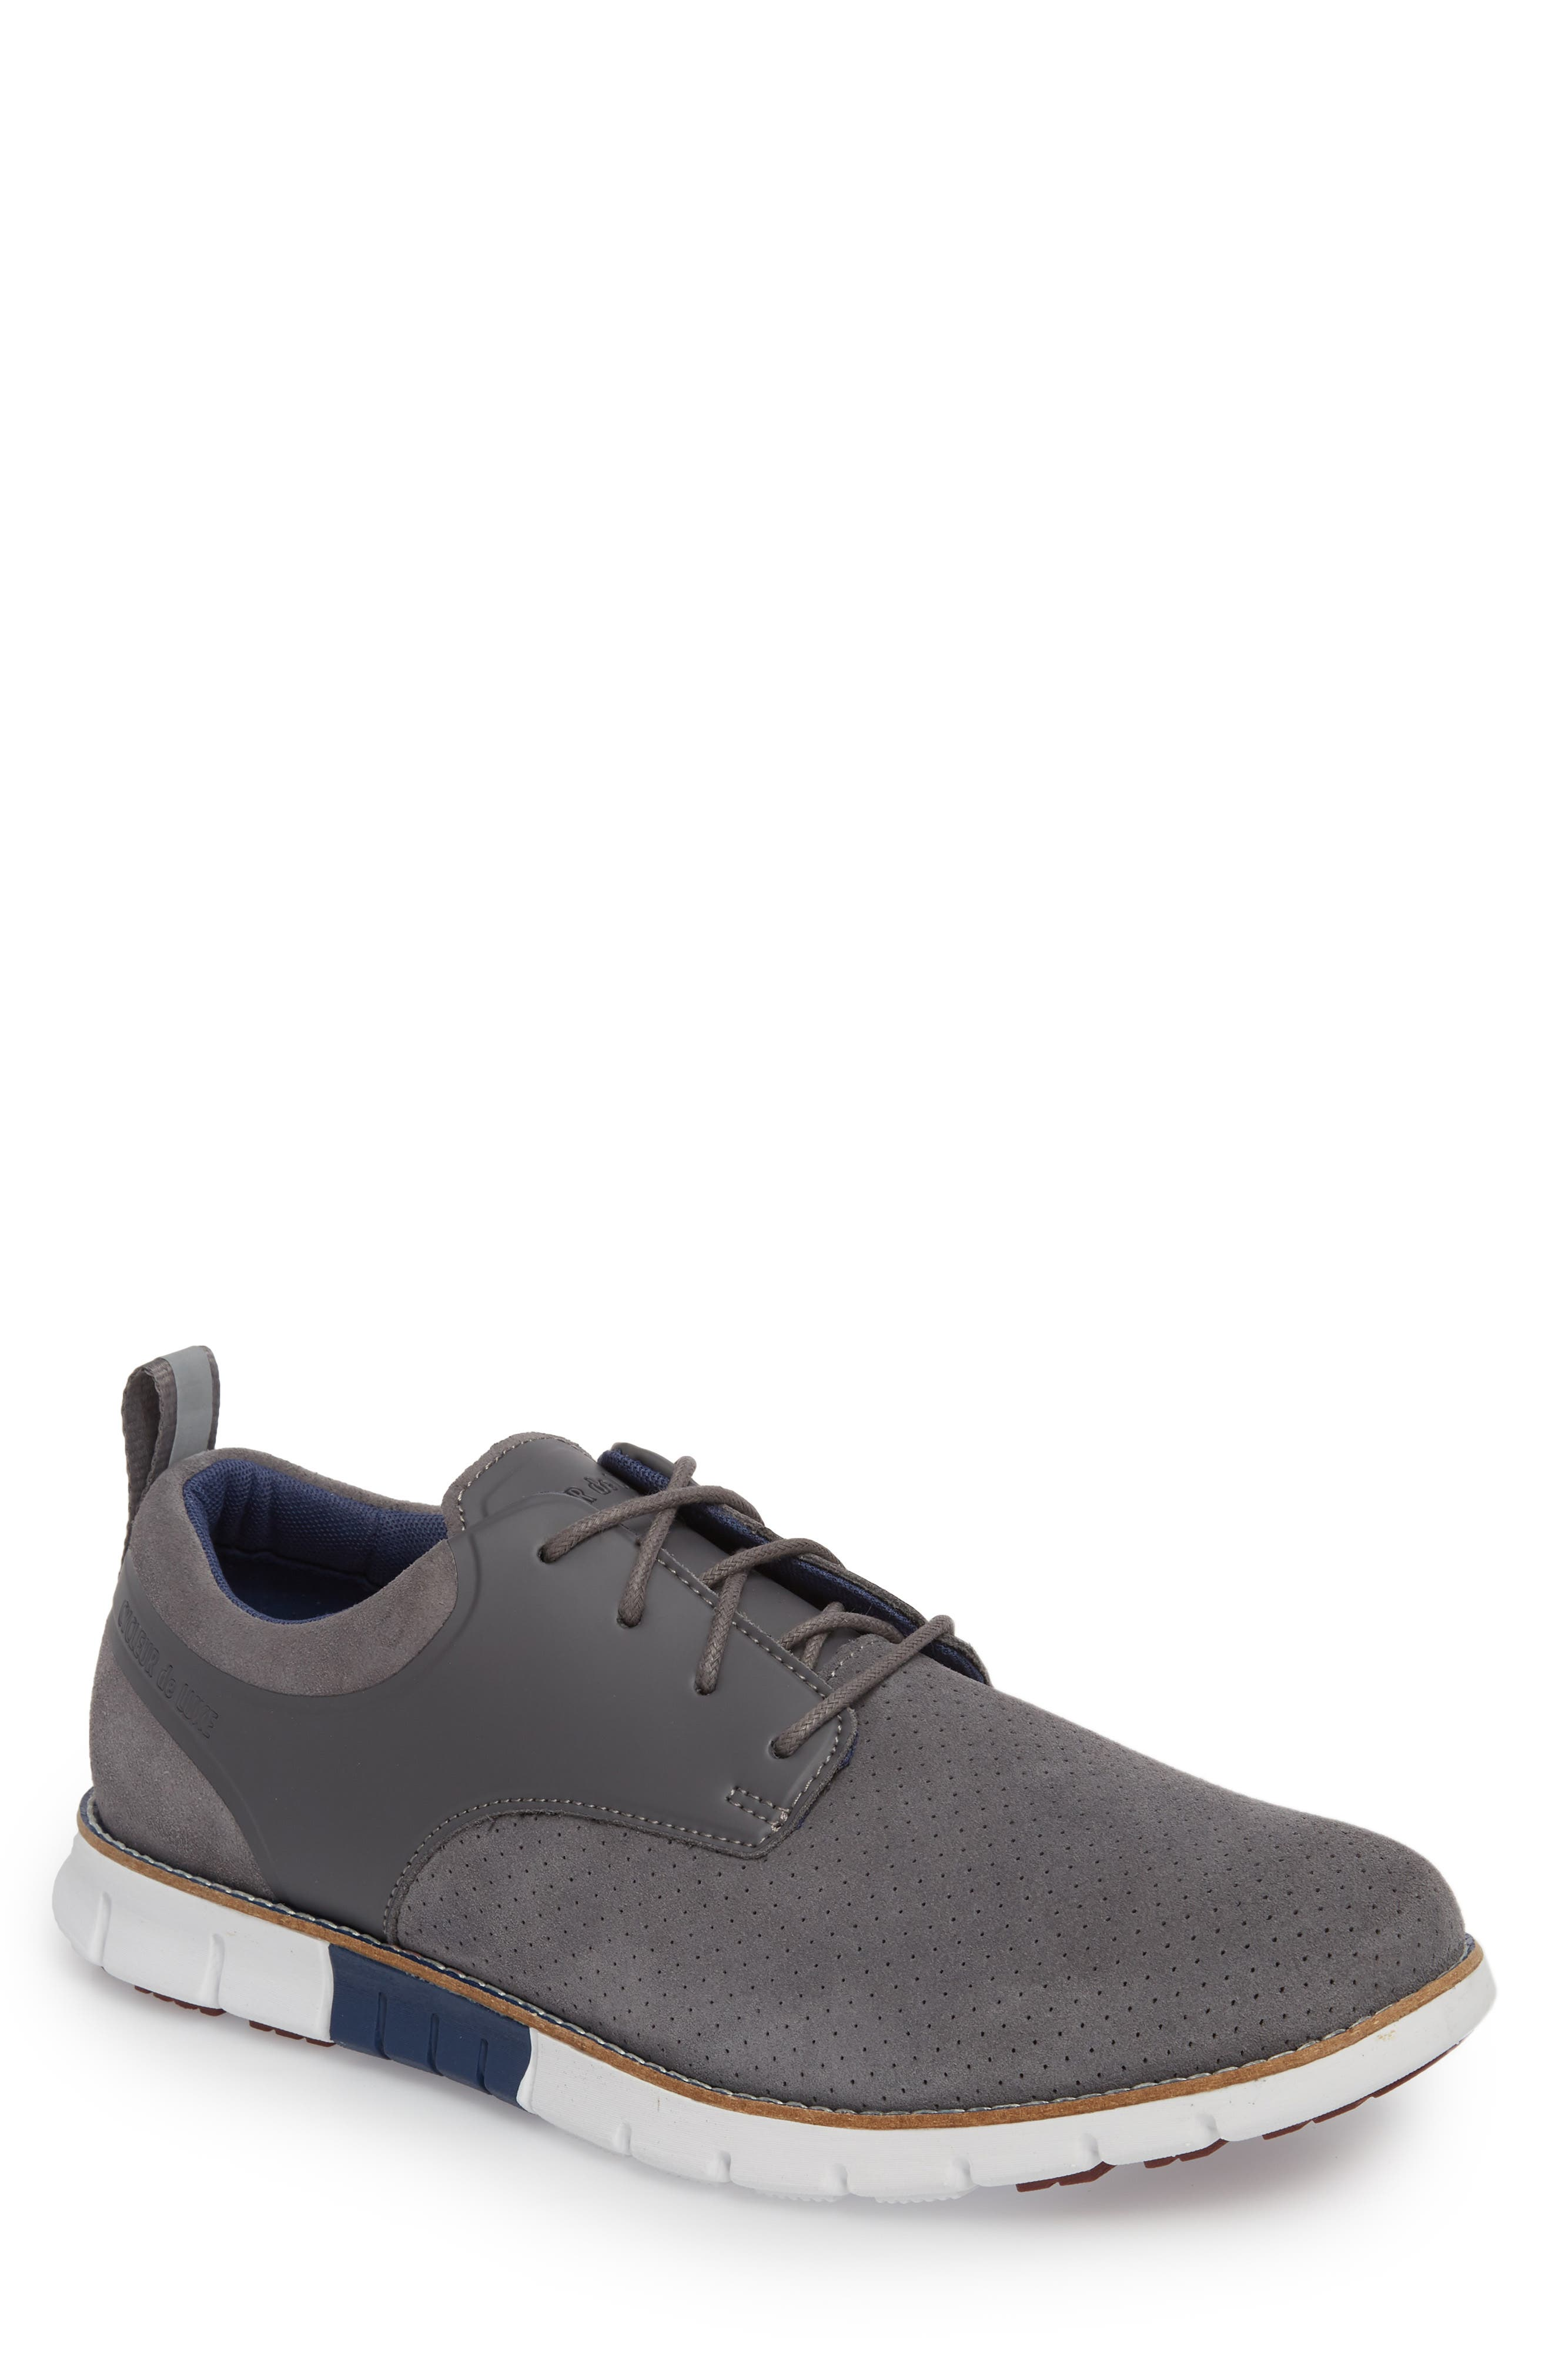 Ridley Perforated Low Top Sneaker,                             Main thumbnail 1, color,                             020